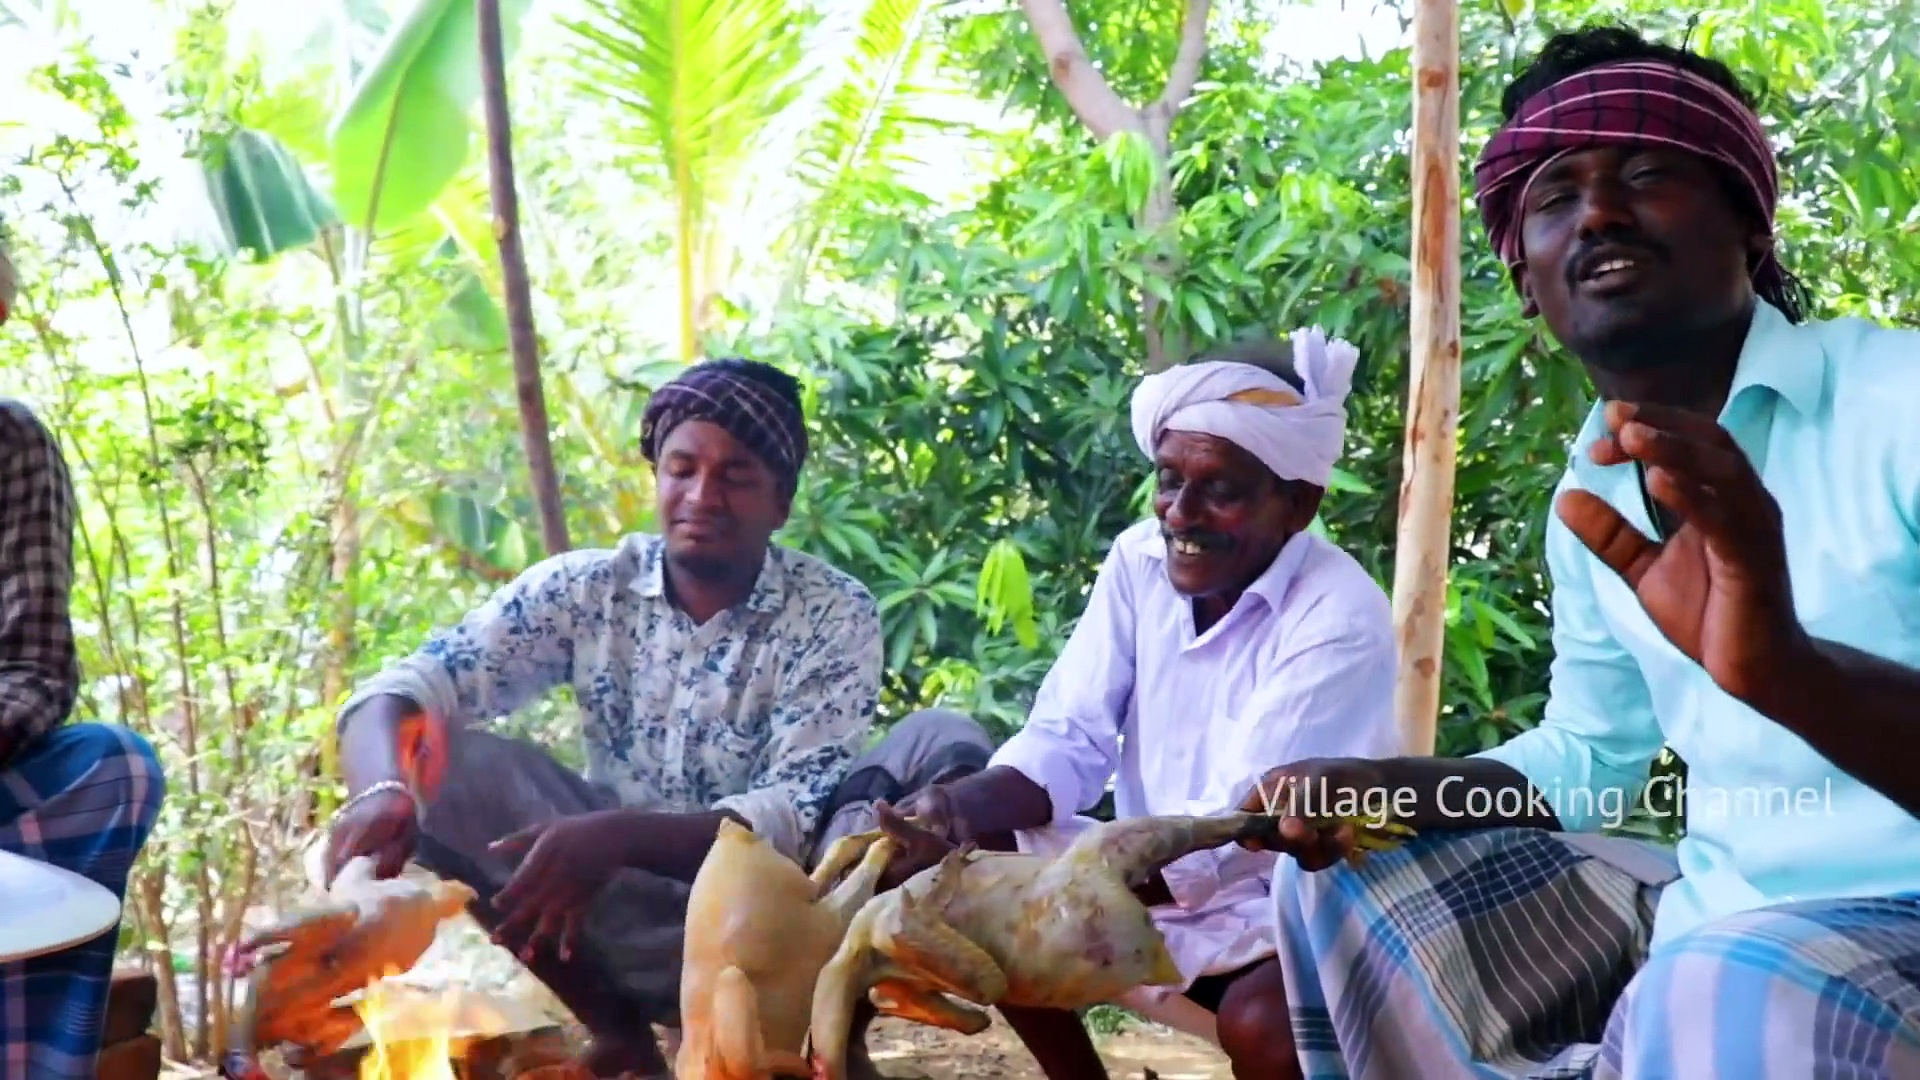 FULL CHICKEN EATING – Full Country Chicken Cooking and Eating in Village – Healthy Village Food